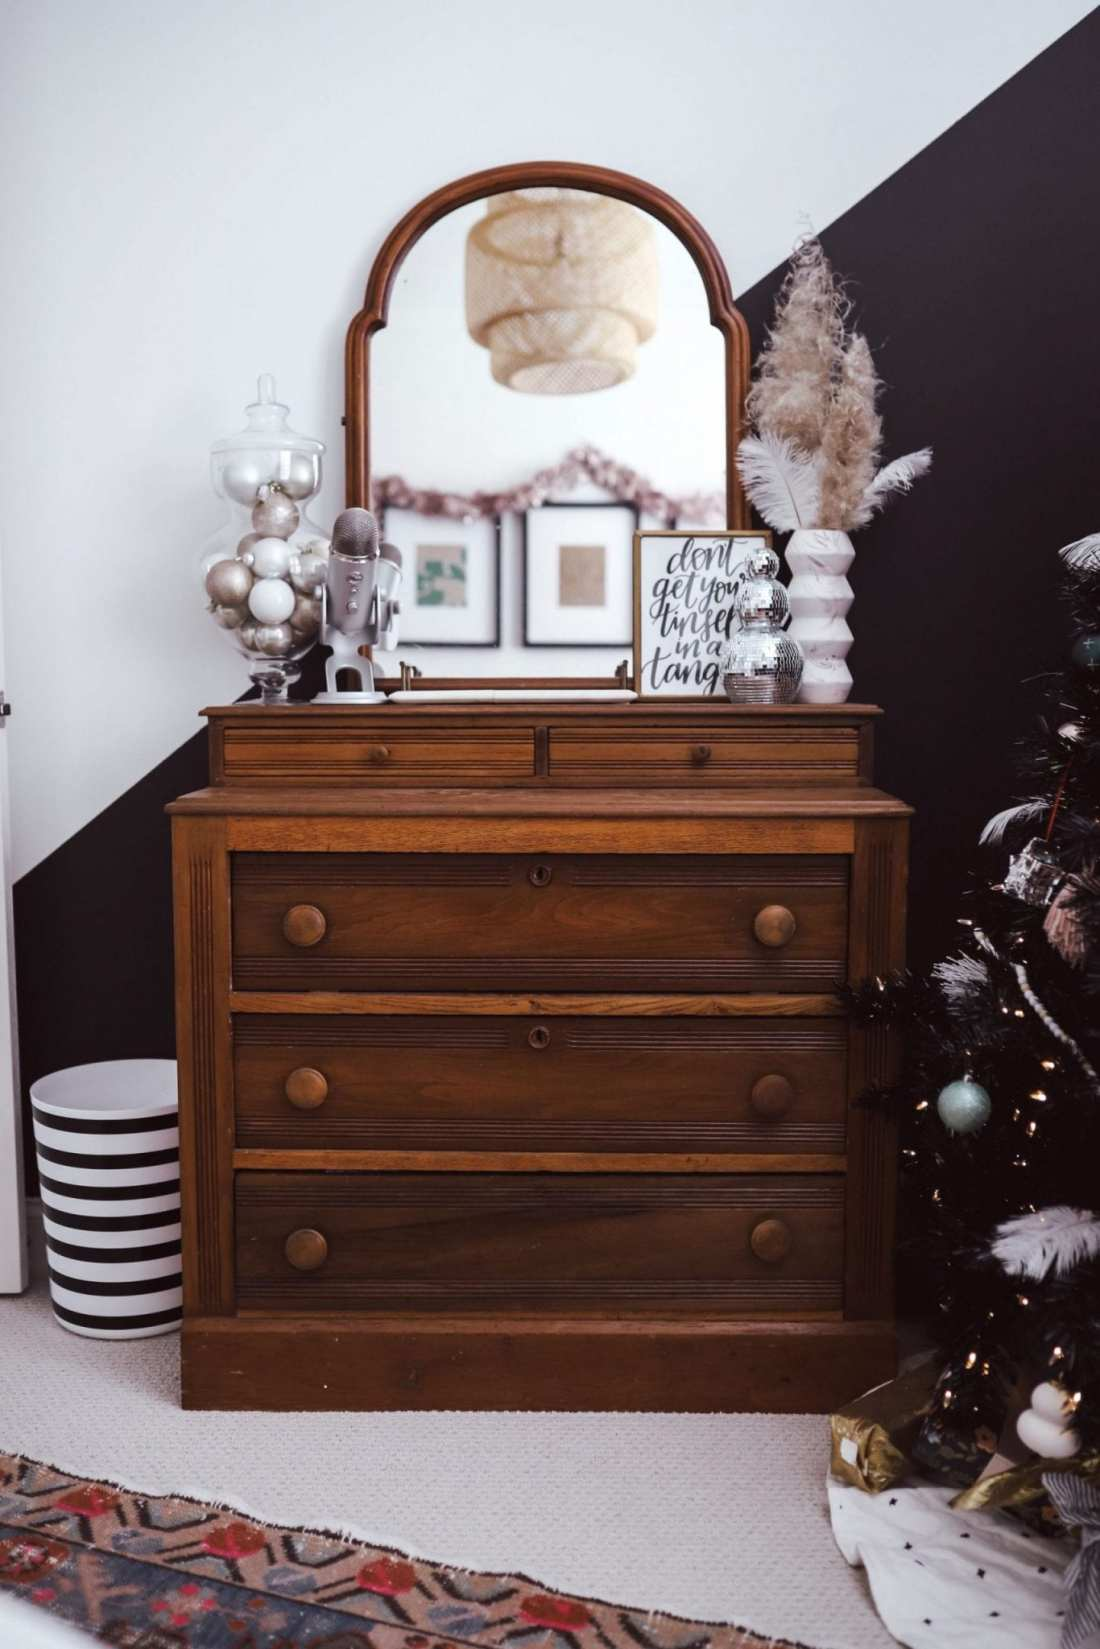 5 Ways to Decorate with Feathers for Boho Christmas Decor by popular Nashville lifestyle blog, Modern Day Moguls: image of a dresser decorated with Oriental Trading Feathers, Wooden Beads, Matte Ornaments, Apothecary Jar with Lid.